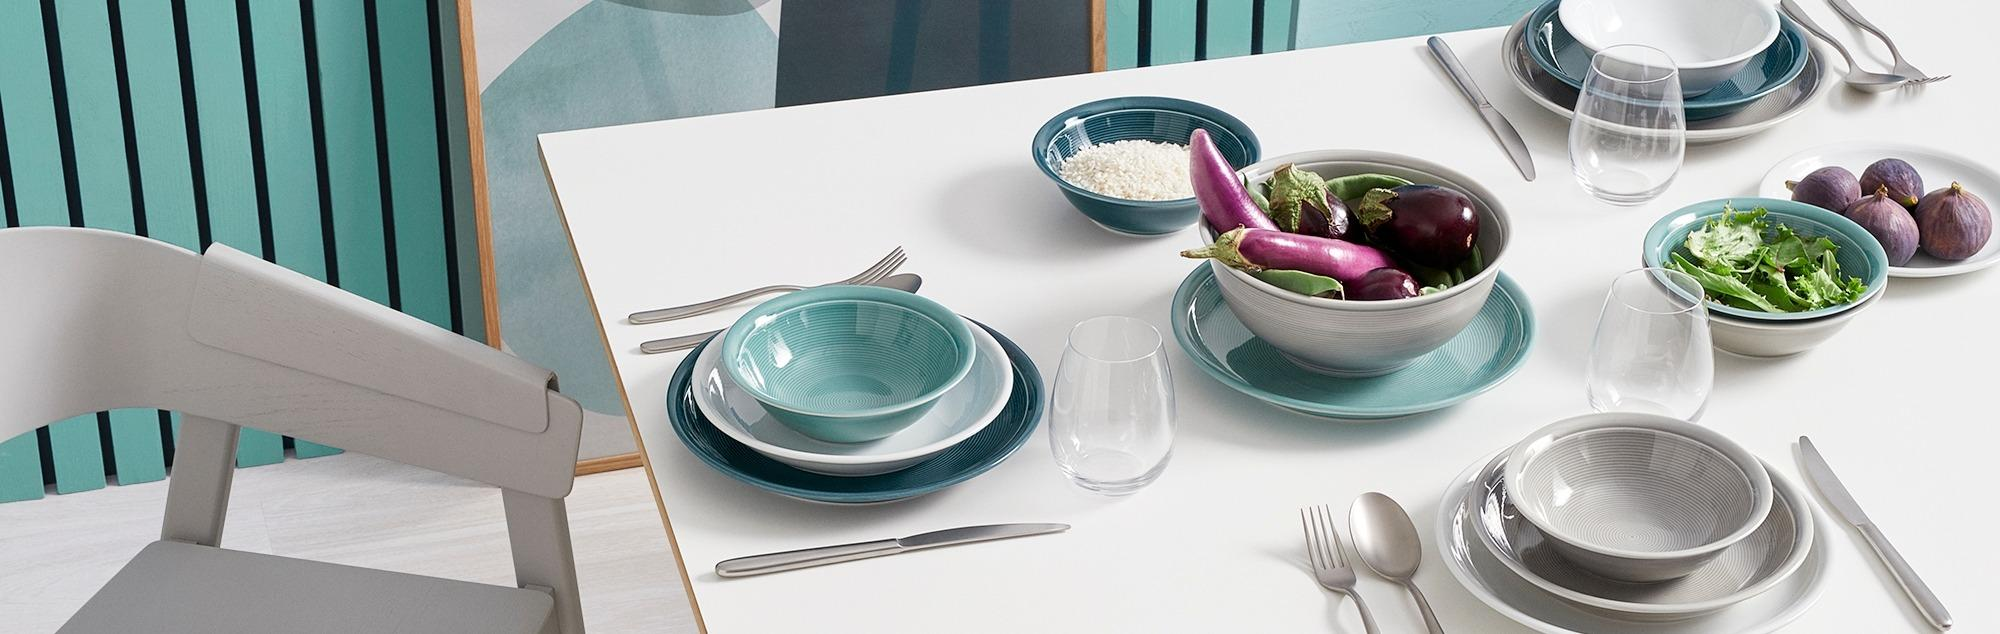 Thomas by Rosenthal lifestyle products slide 2